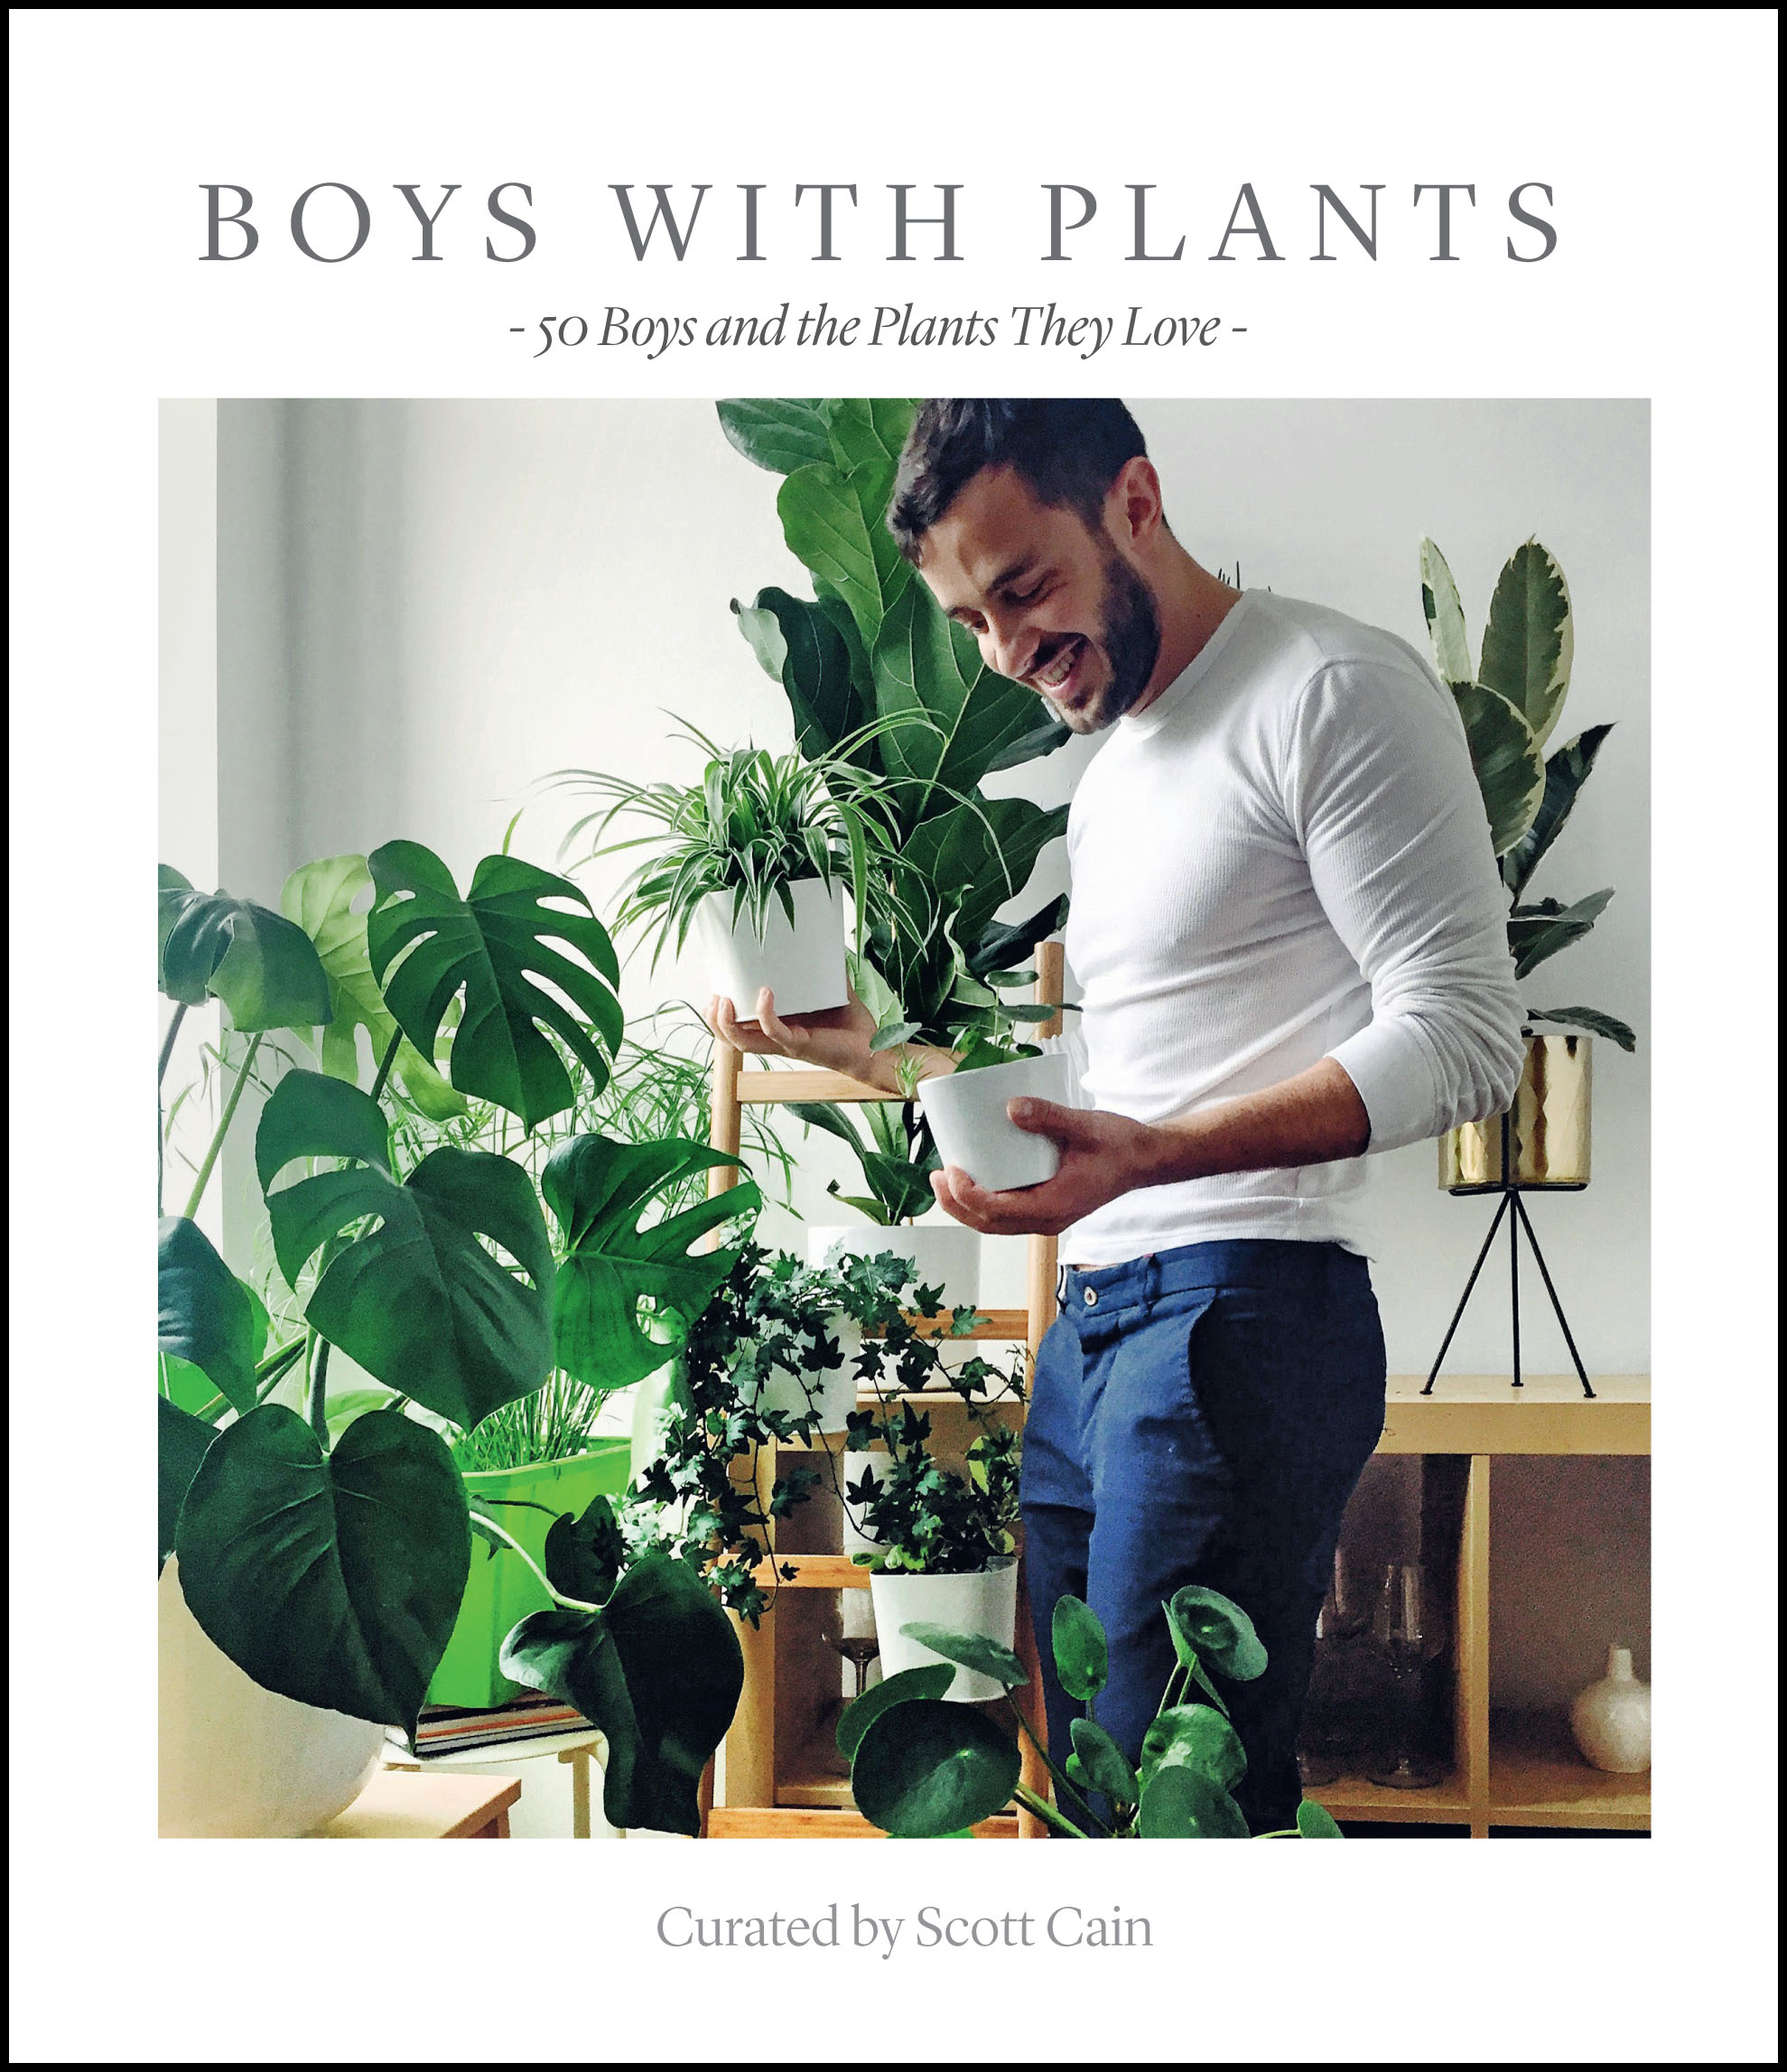 Boys With Plants book celebrates men's love for their leafy pals